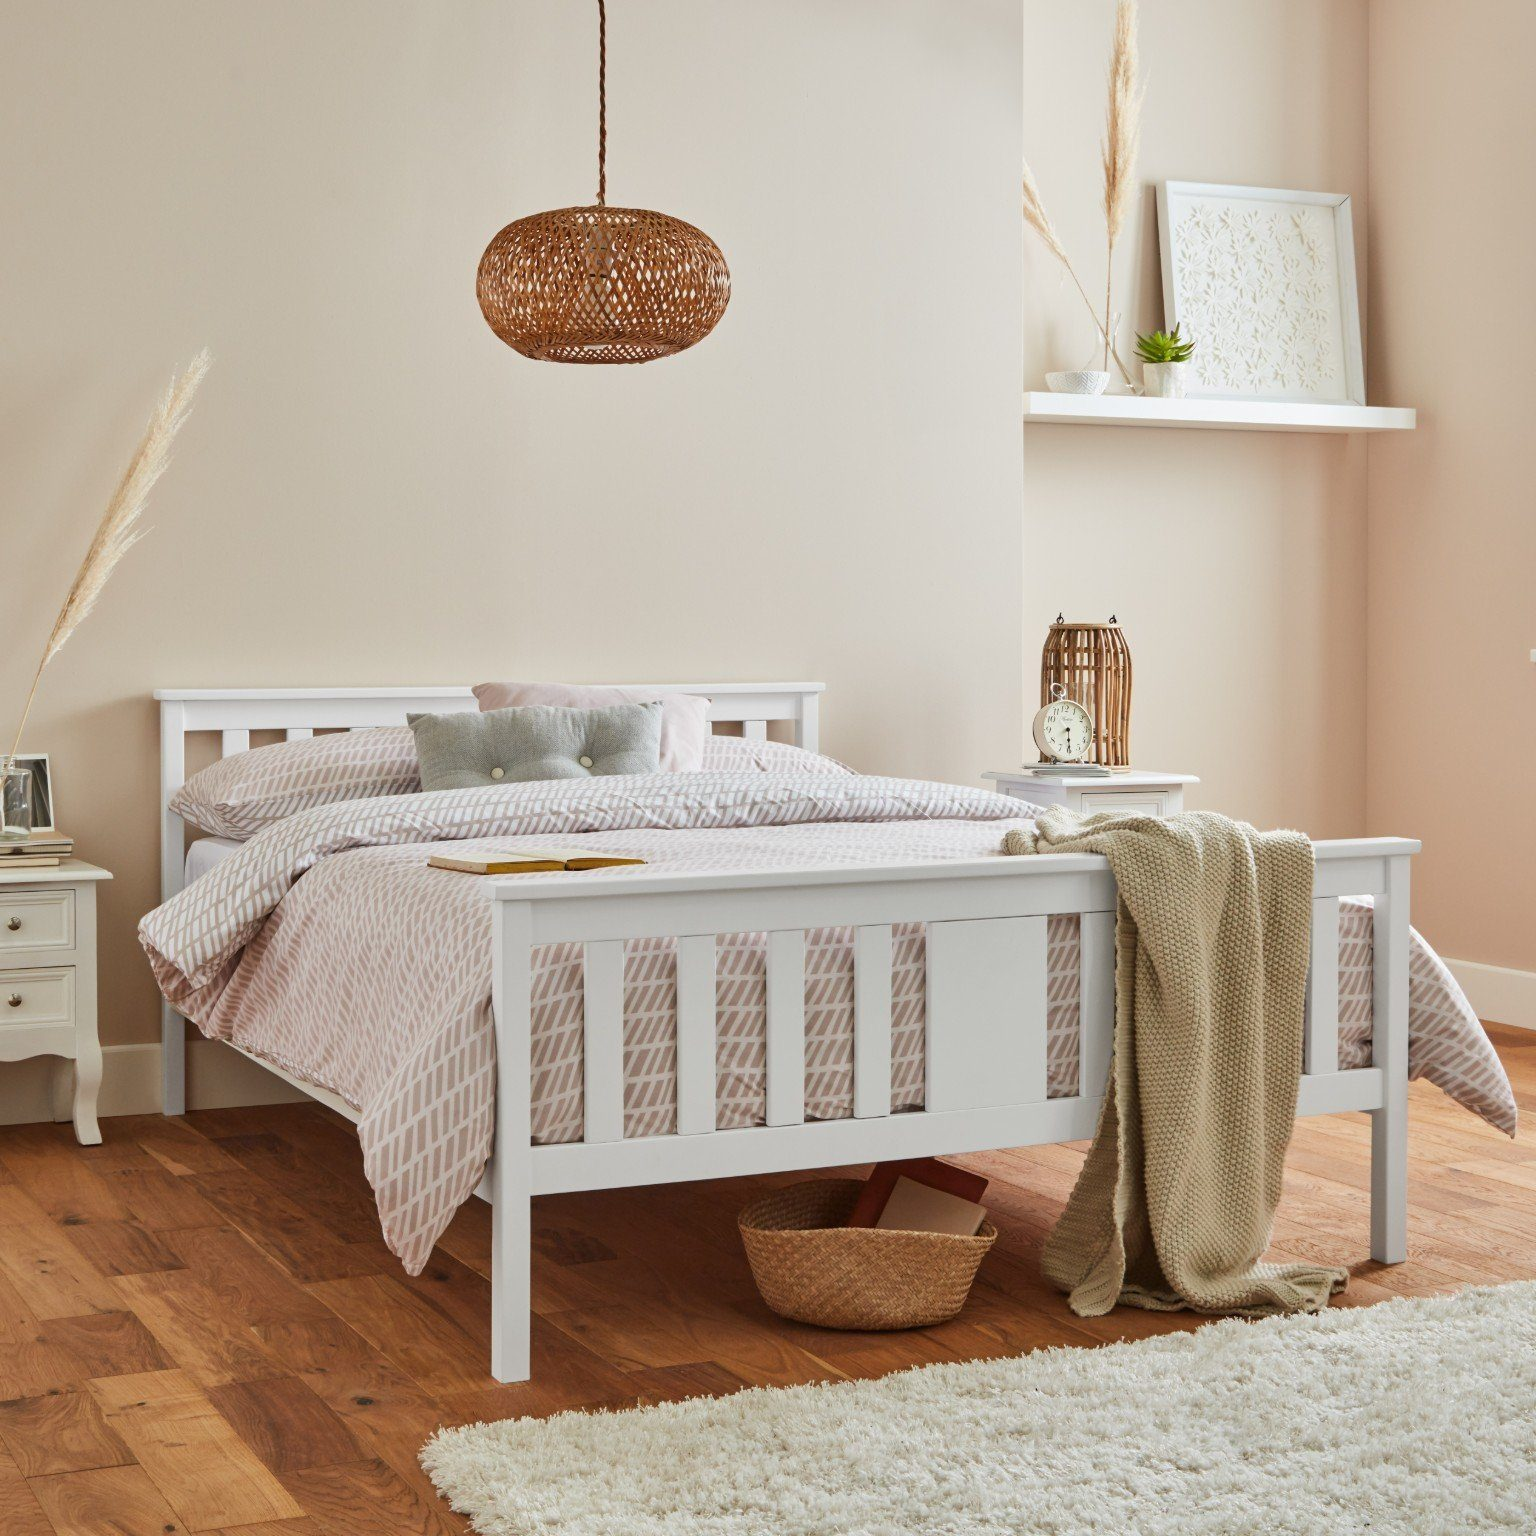 Picture of: Beds Designer Beds Online From Laura James